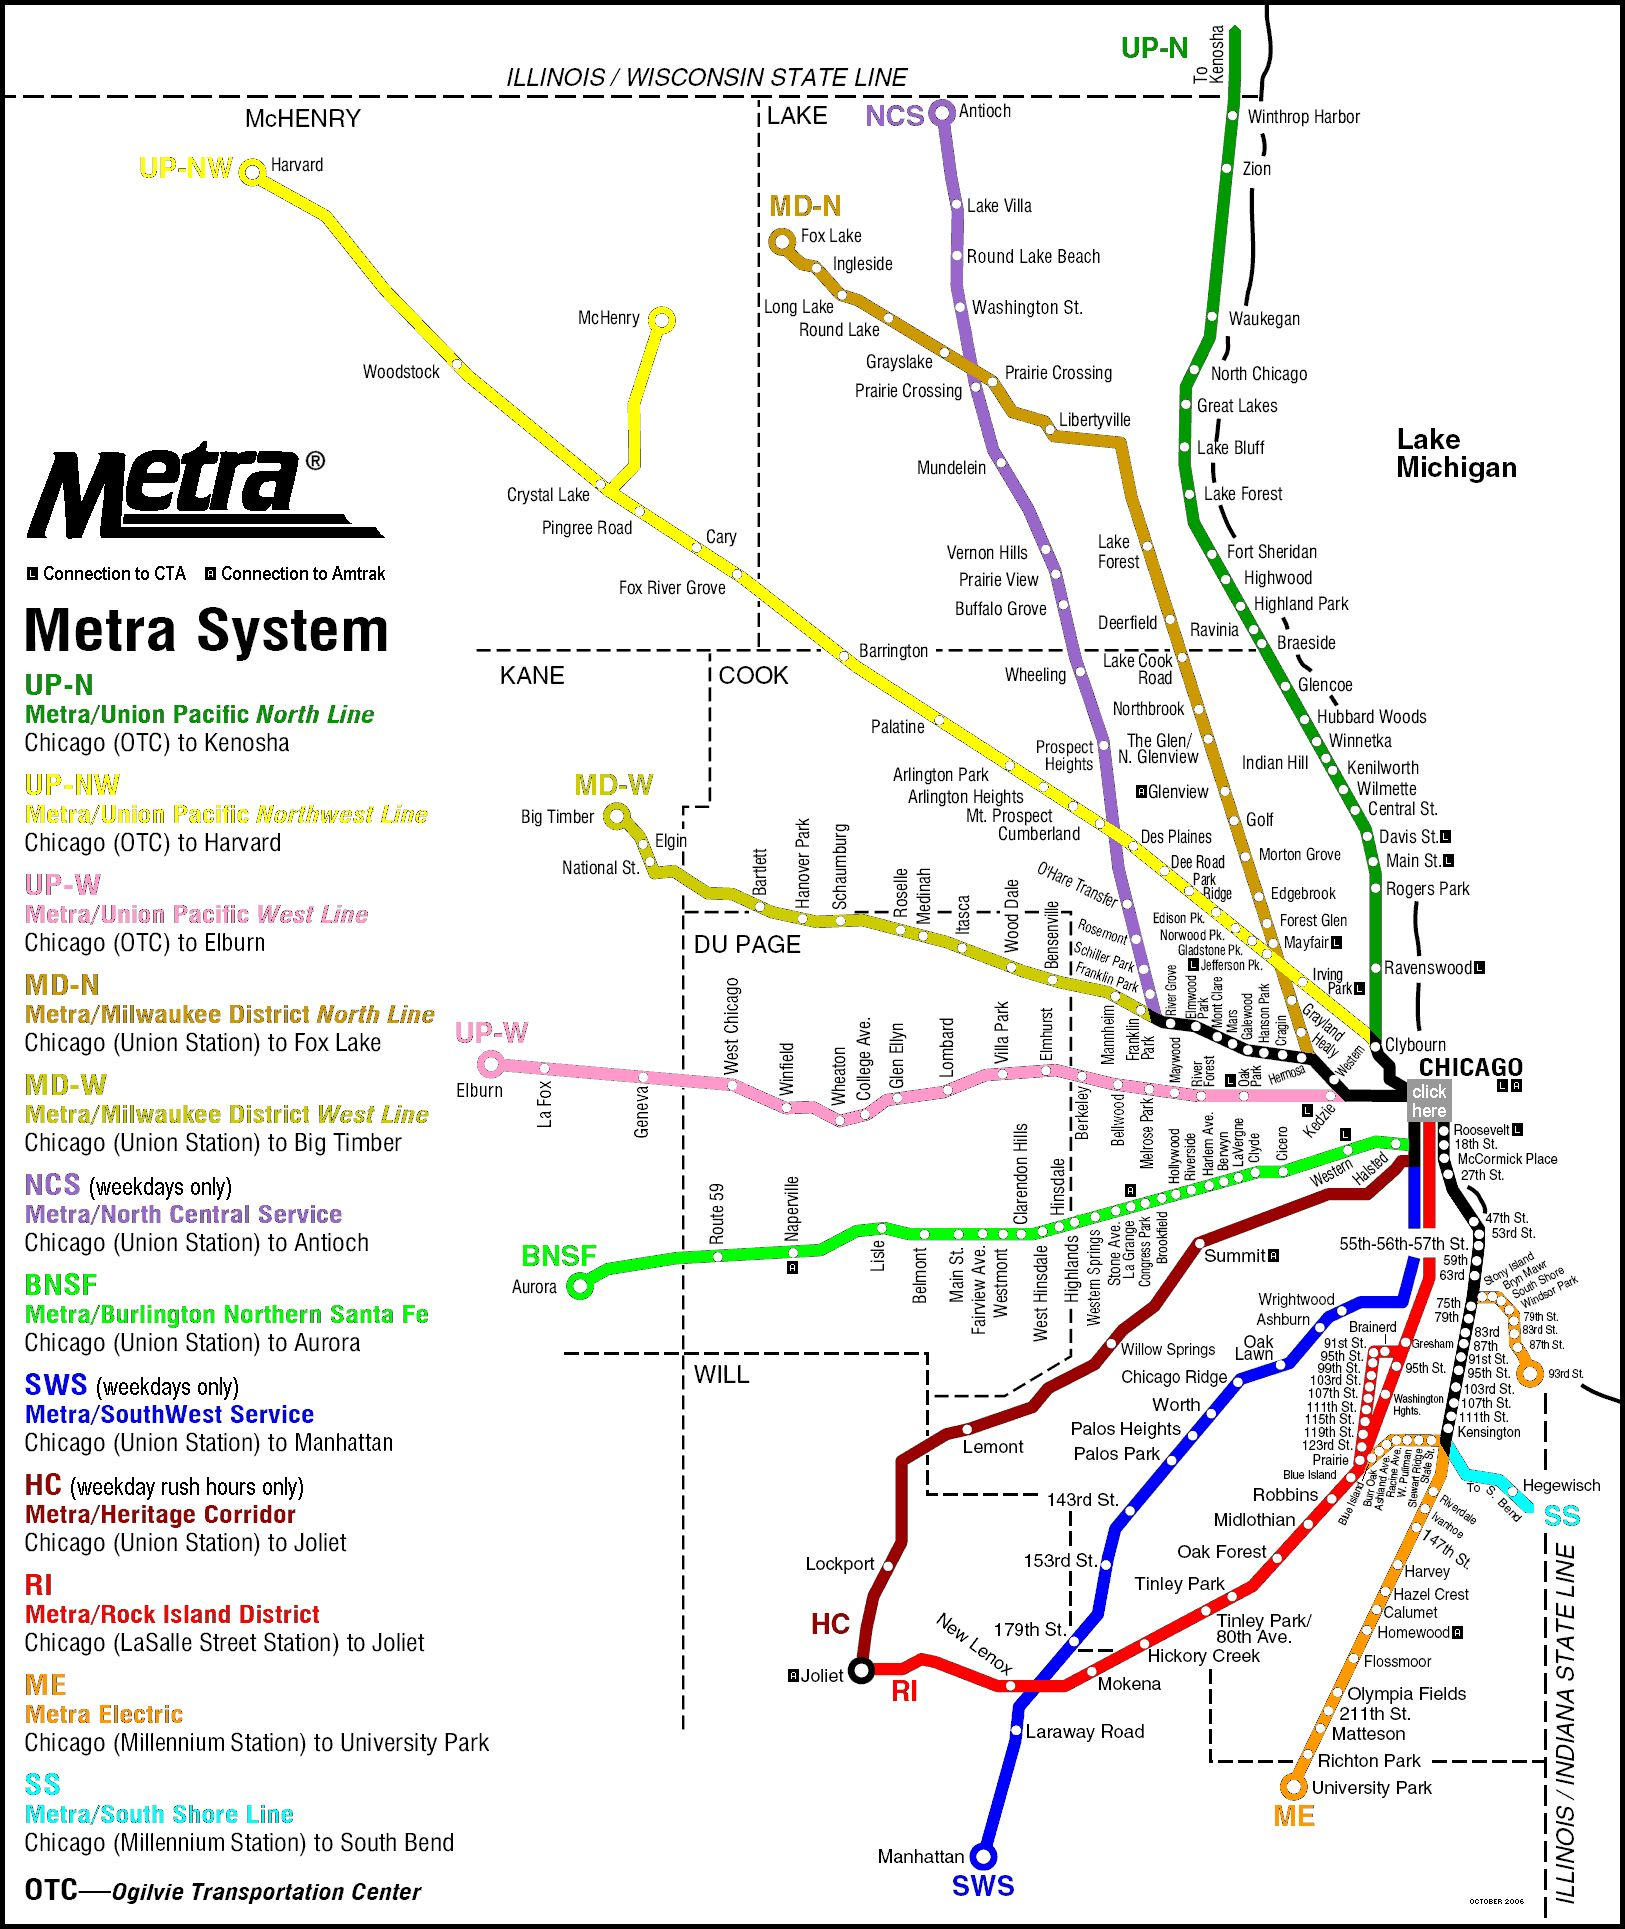 Chicago Metra Map Metra Rail Map, Chicago Illinois. | Chicago via Charleston in 2019  Chicago Metra Map